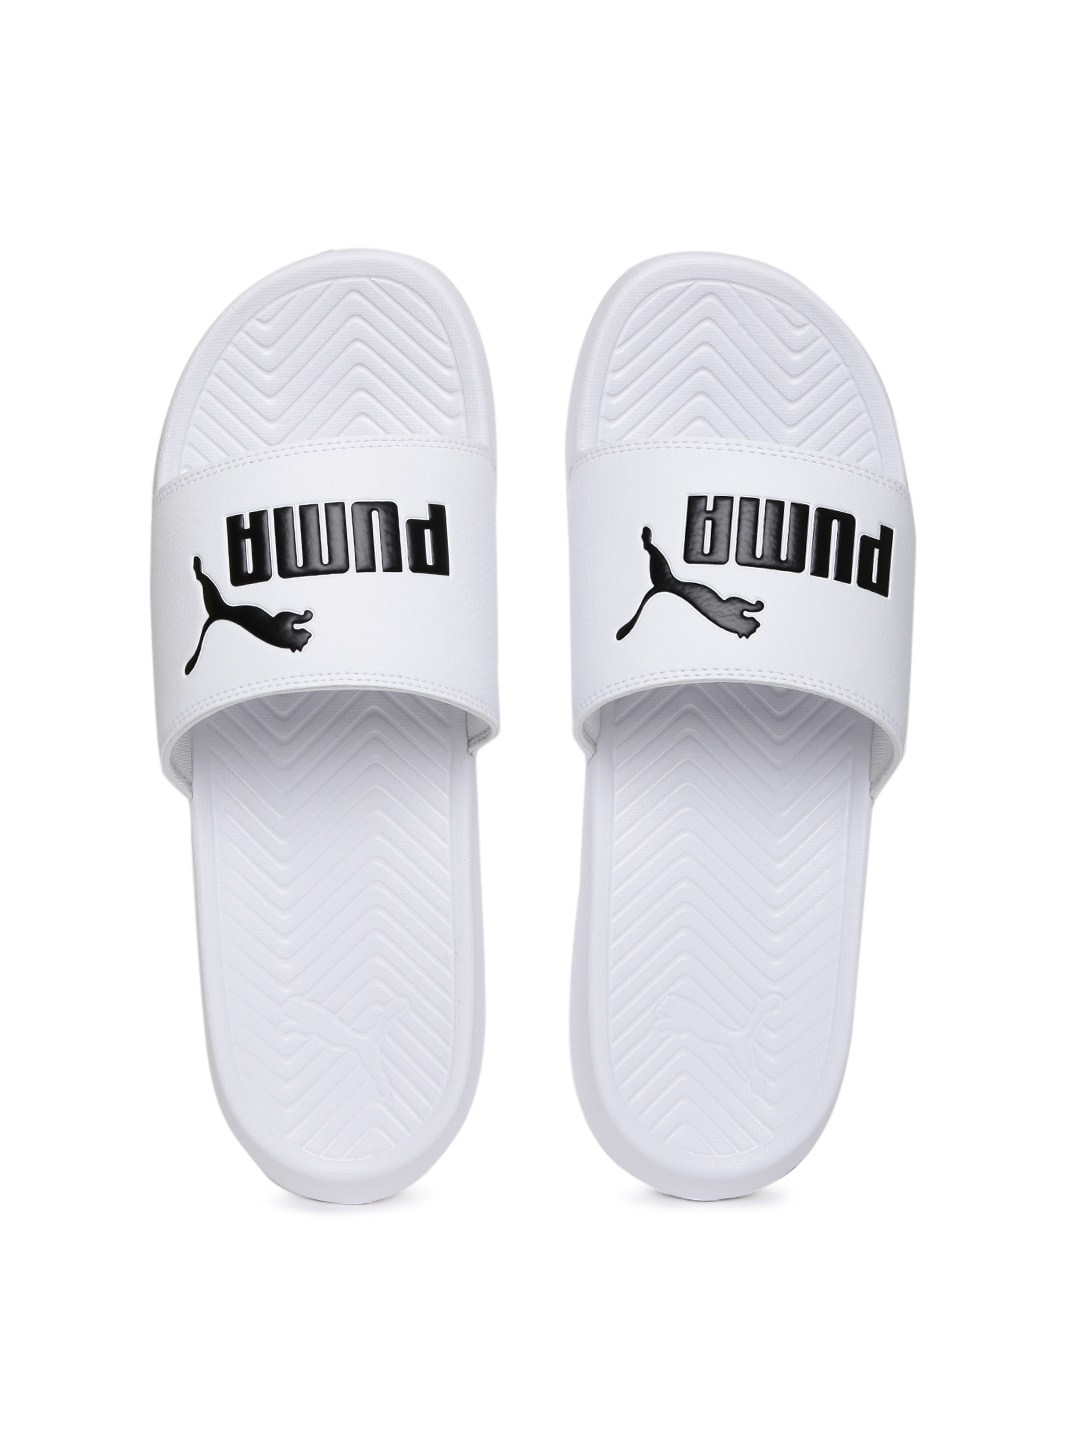 40631c330523 Puma Slippers - Buy Puma Slippers Online at Best Price